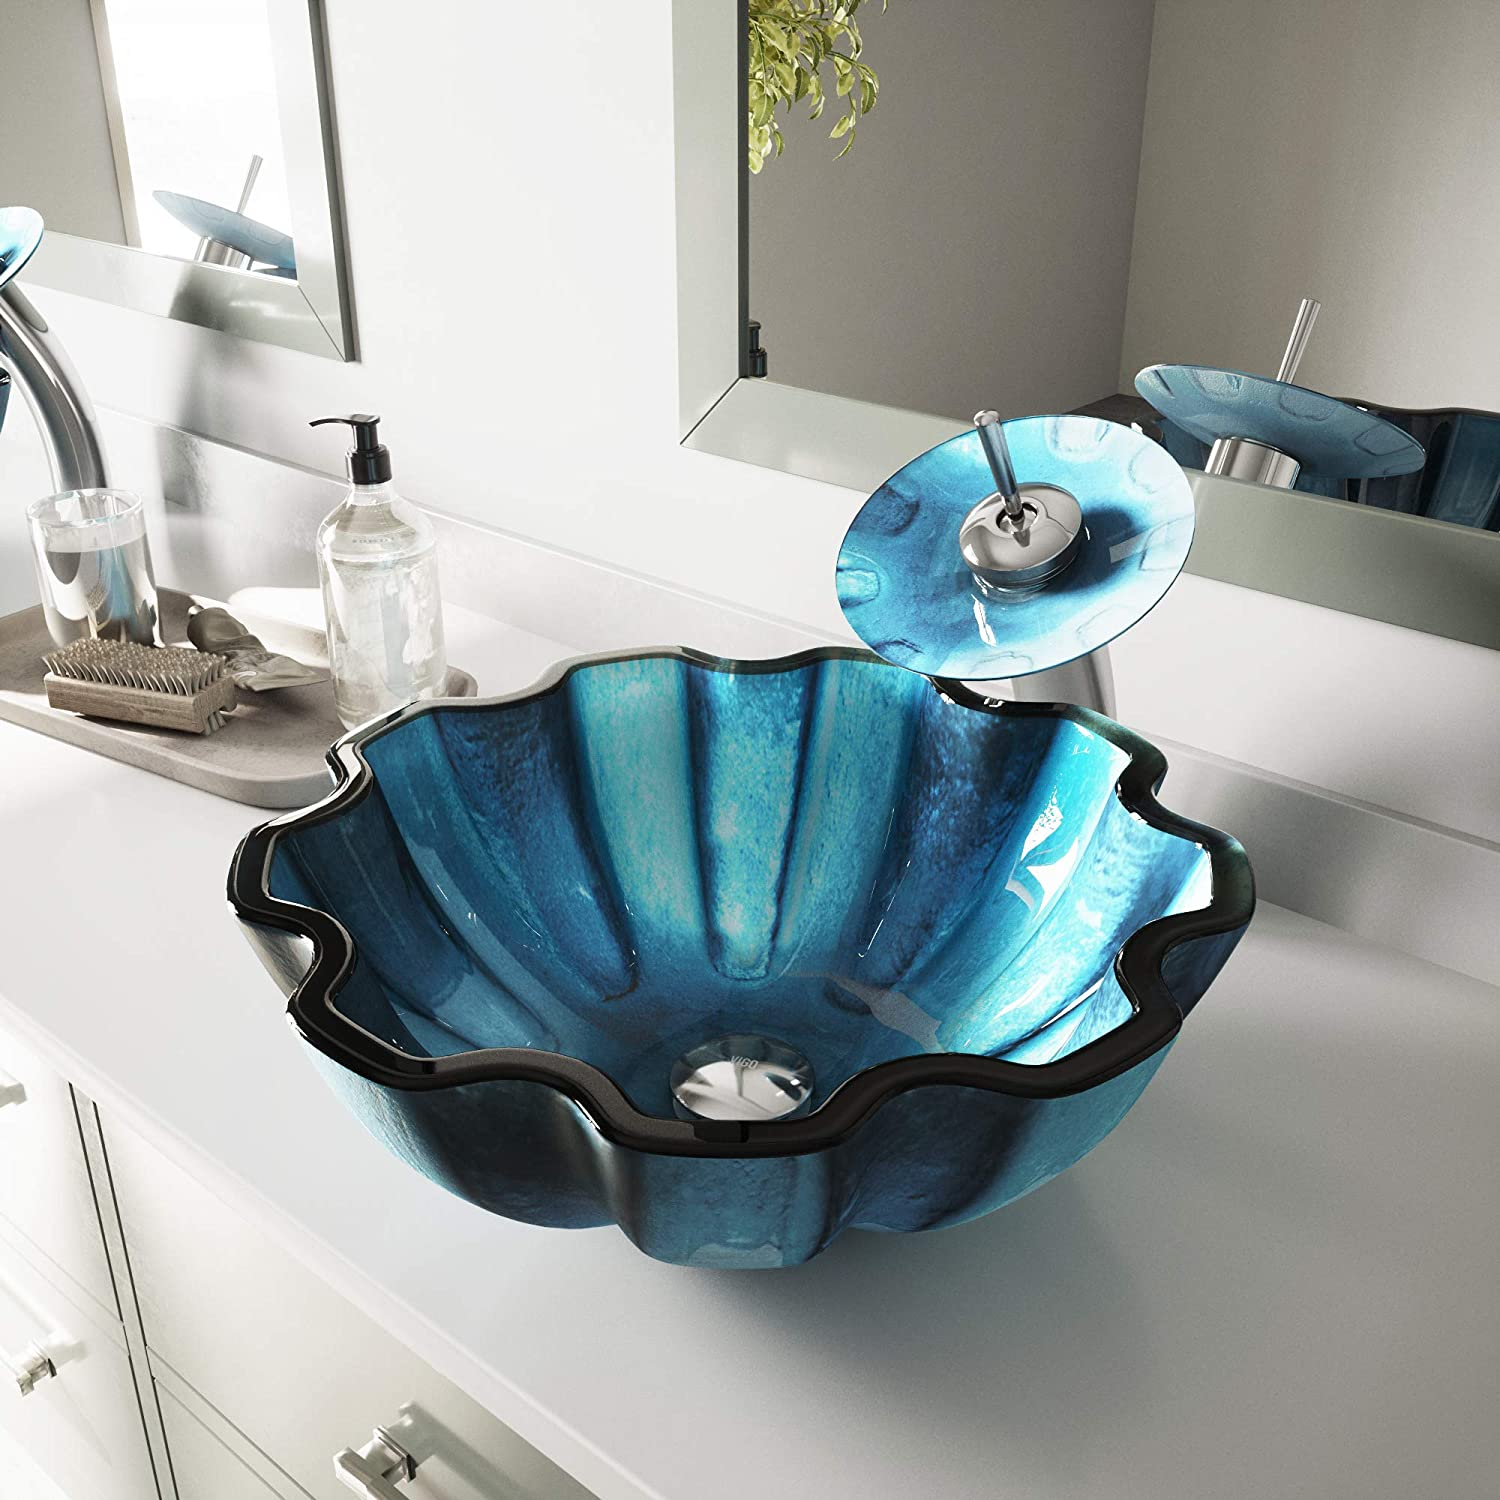 VIGO Mediterranean Seashell Glass Vessel Bathroom Sink and Waterfall Faucet with Pop Up, Chrome